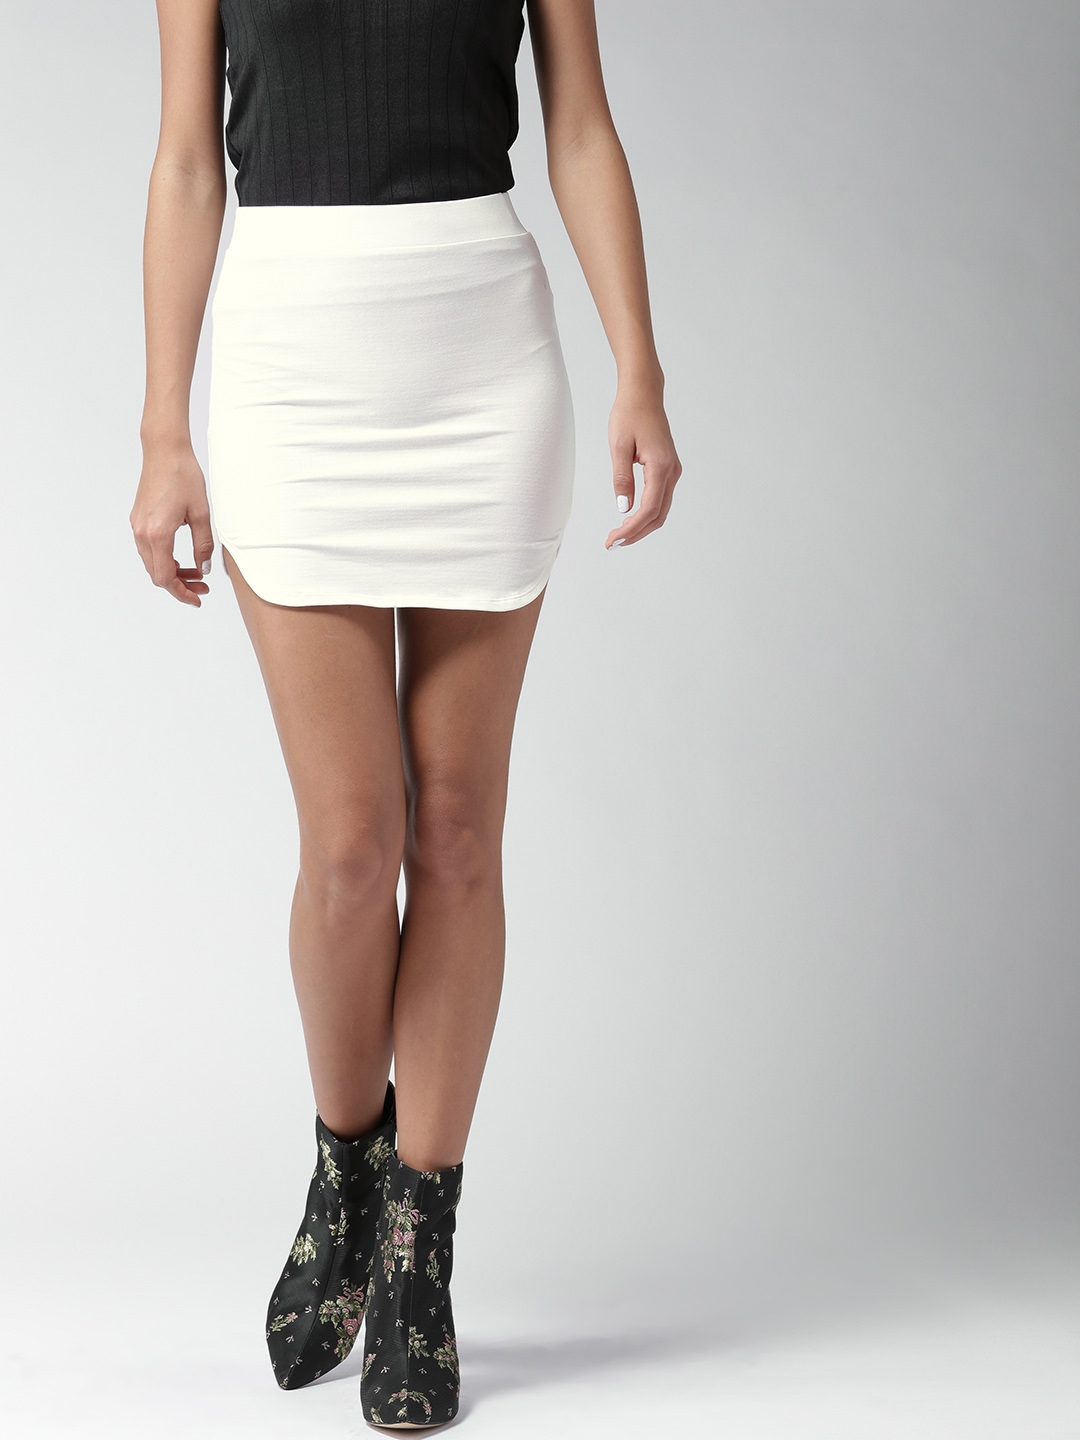 d16a133af0 Buy FOREVER 21 White Mini Pencil Skirt - Skirts for Women 2459660 ...